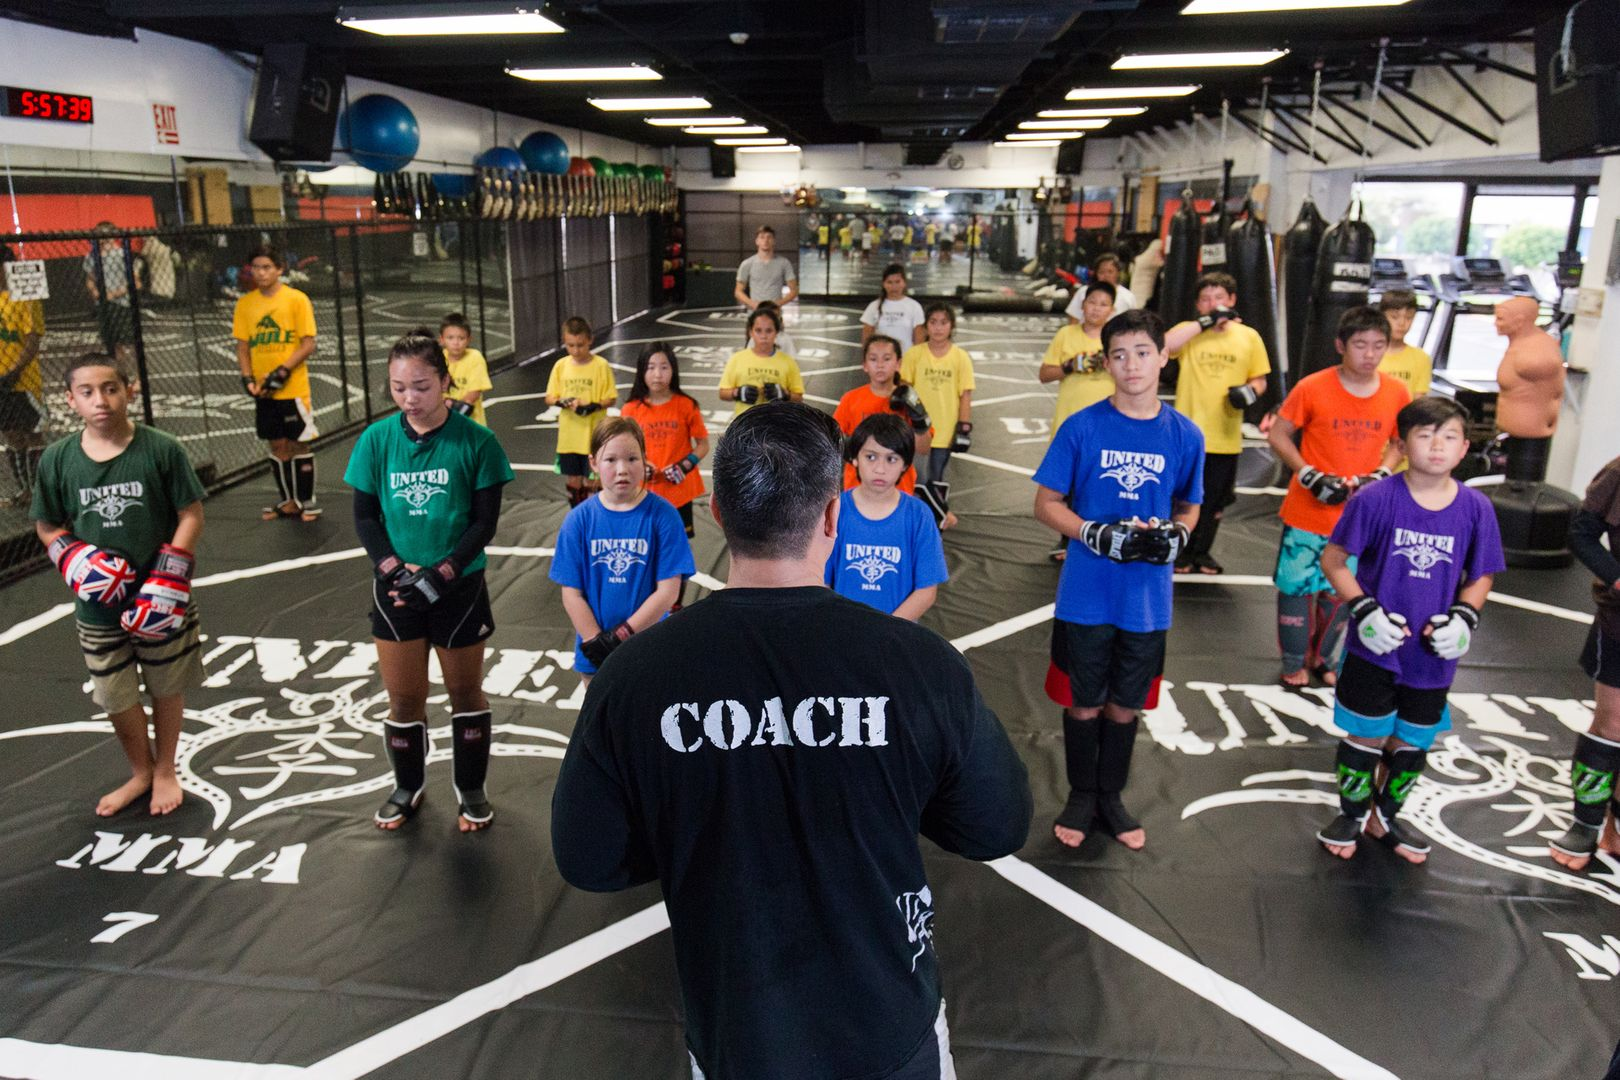 Ken Lee teaches children at United MMA